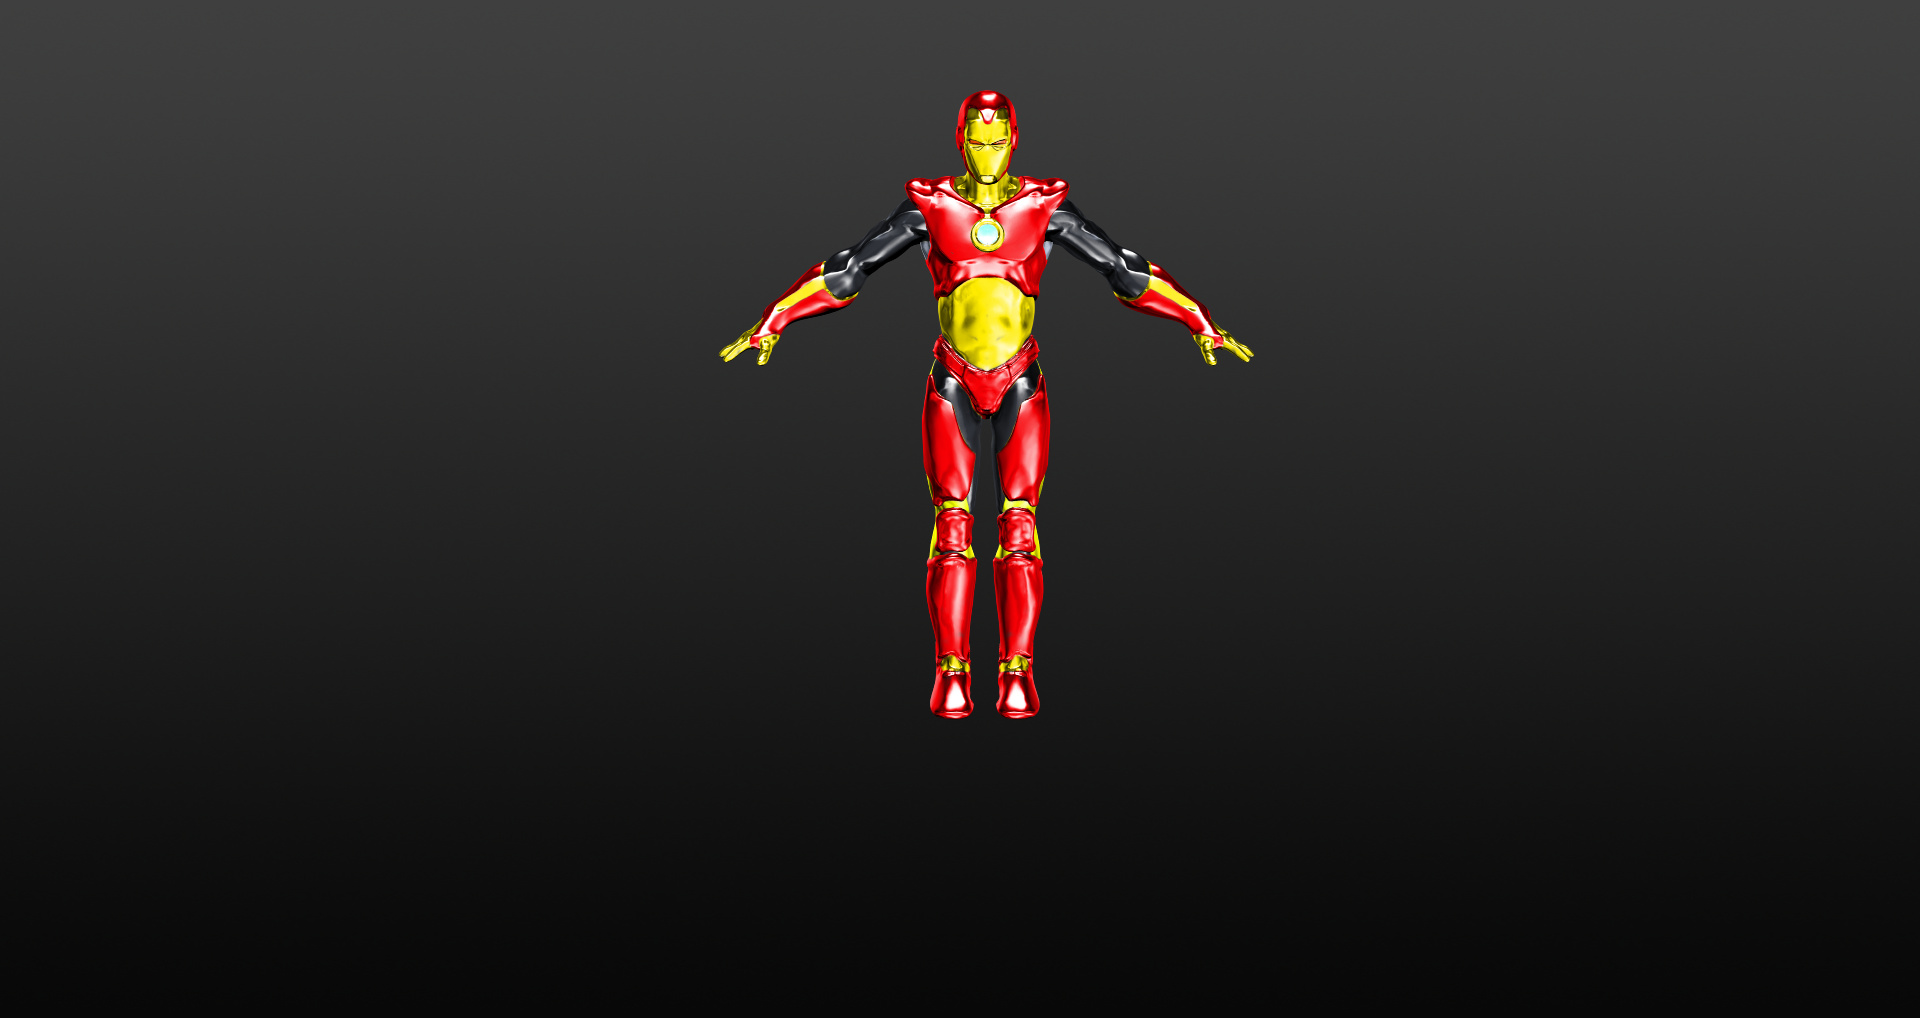 Ironman_Prova24_color3_front